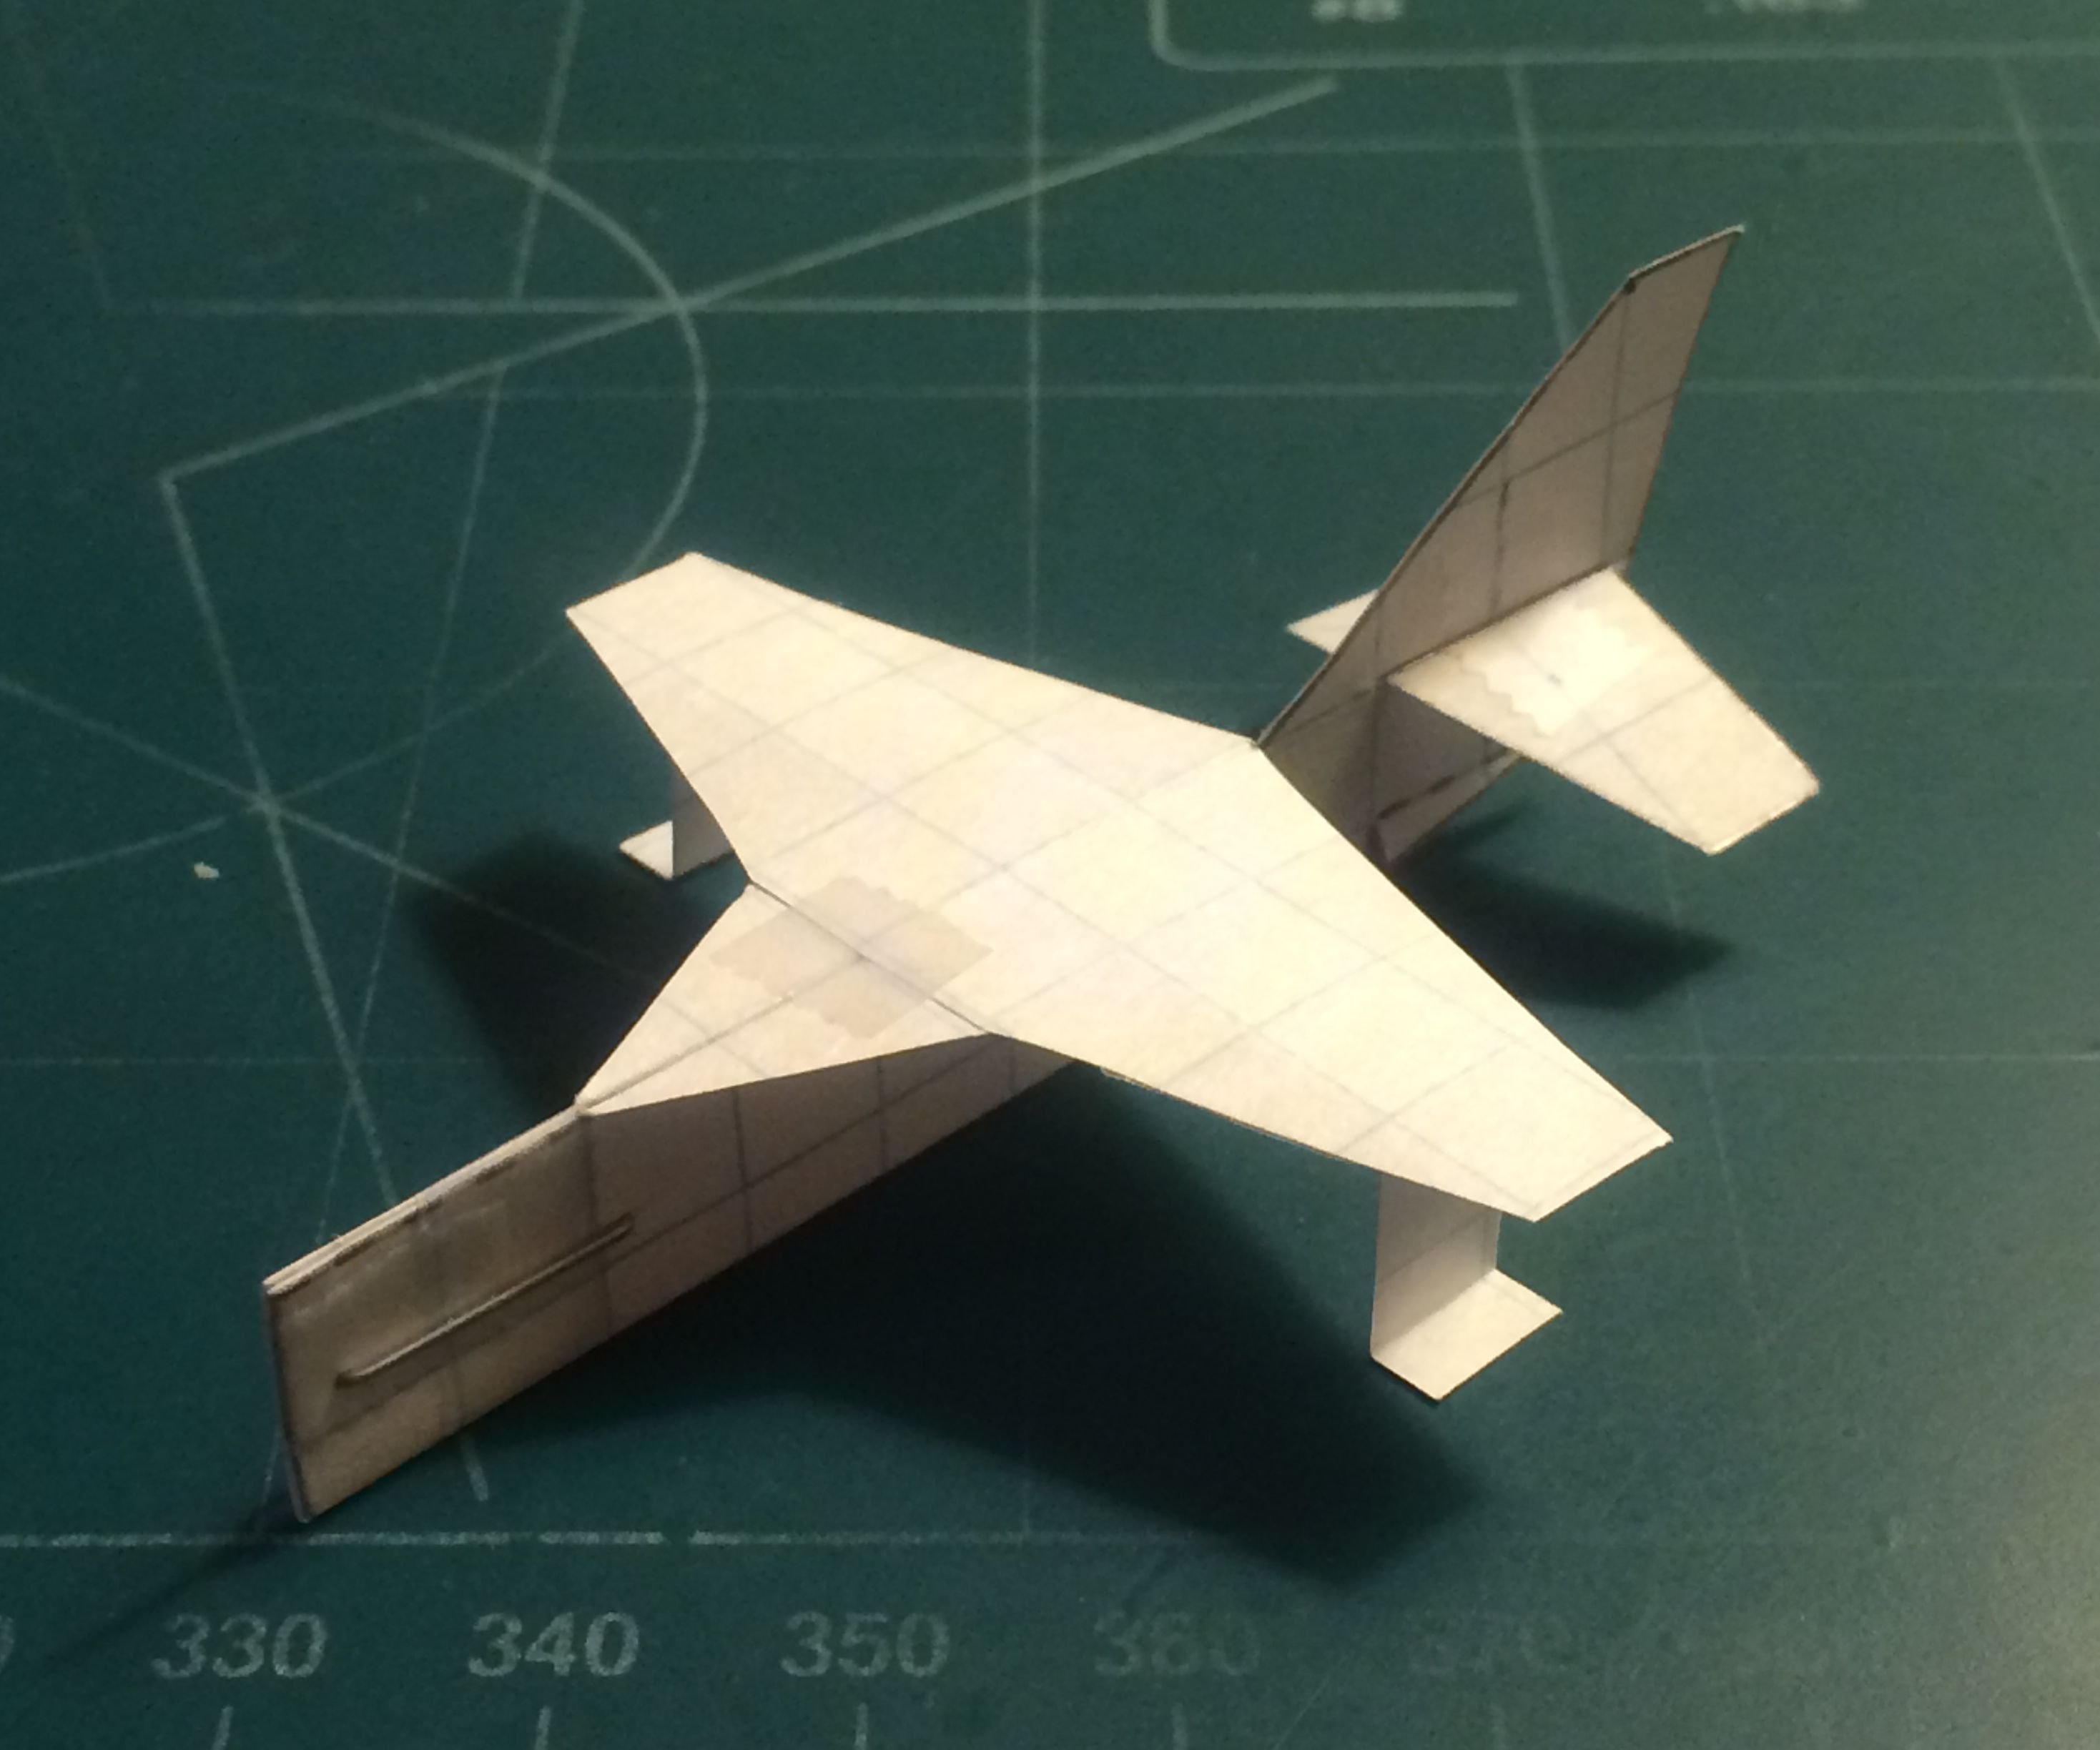 How To Make The Simple StratoCardinal Paper Airplane